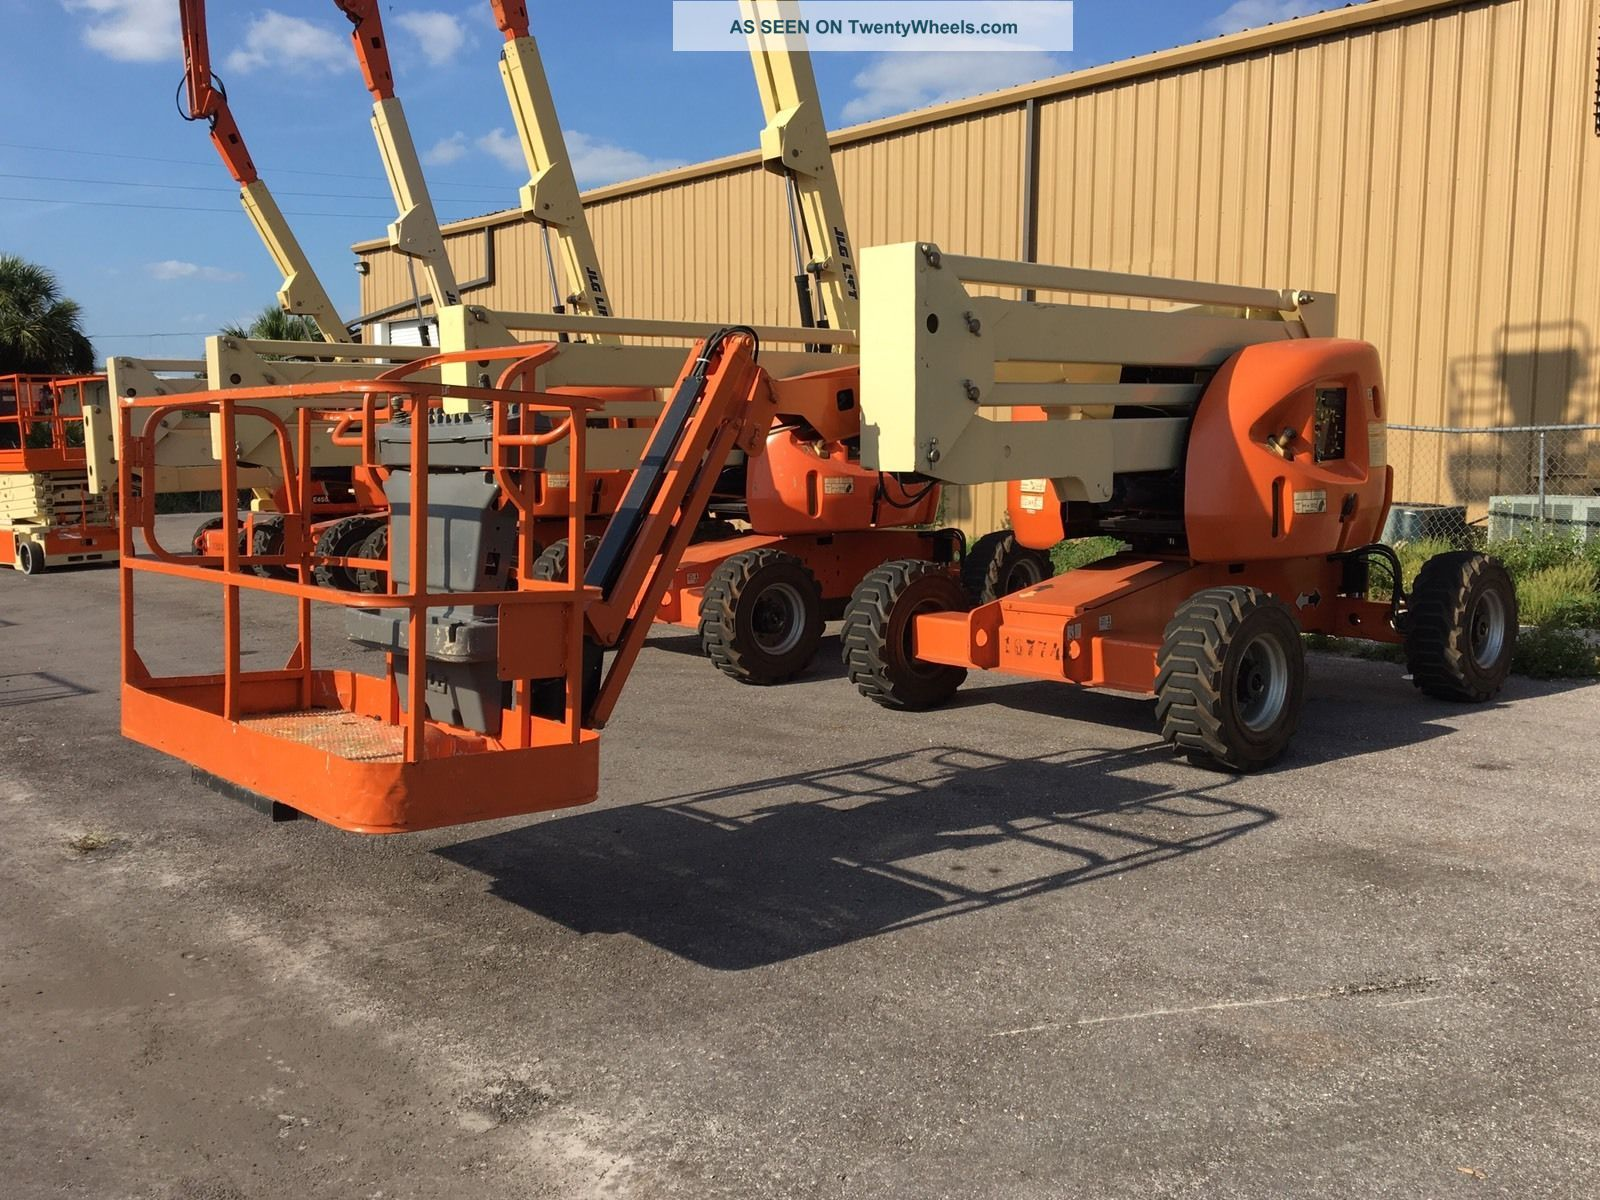 Jlg Boom Lift 450aj 2012 Scissor & Boom Lifts photo